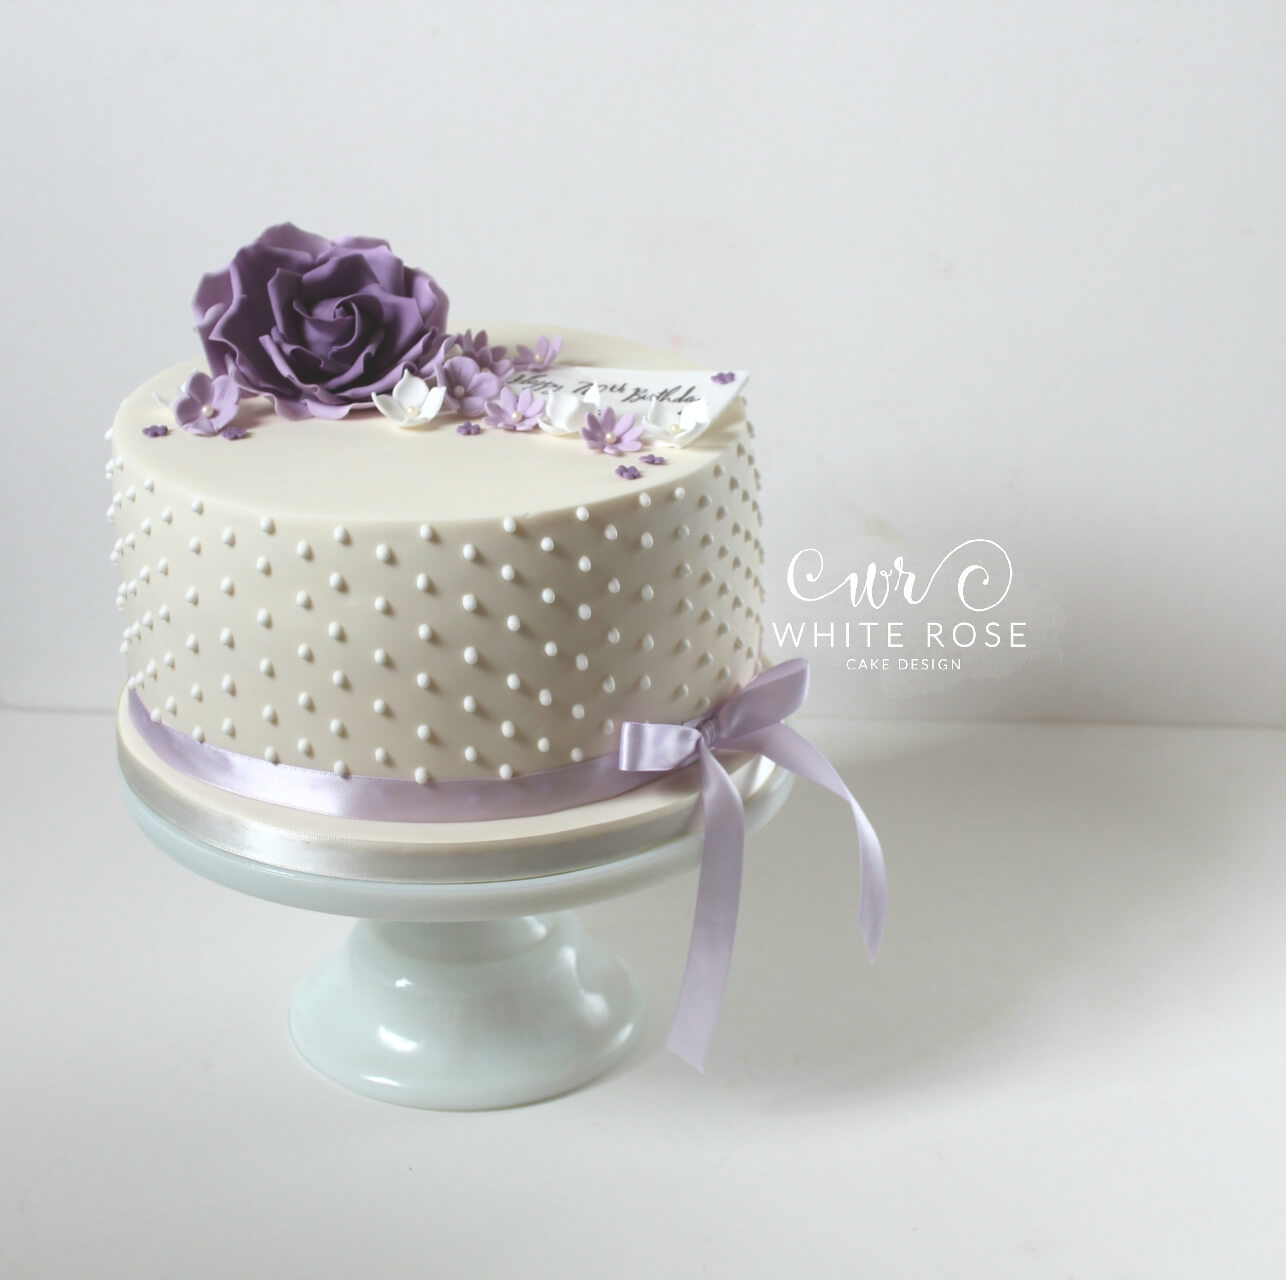 Purple Lilac 70th Birthday Cake by White Rose Cake Design Bespoke Birthday and Celebration Cakes in West Yorkshire Huddersfield Holmfirth